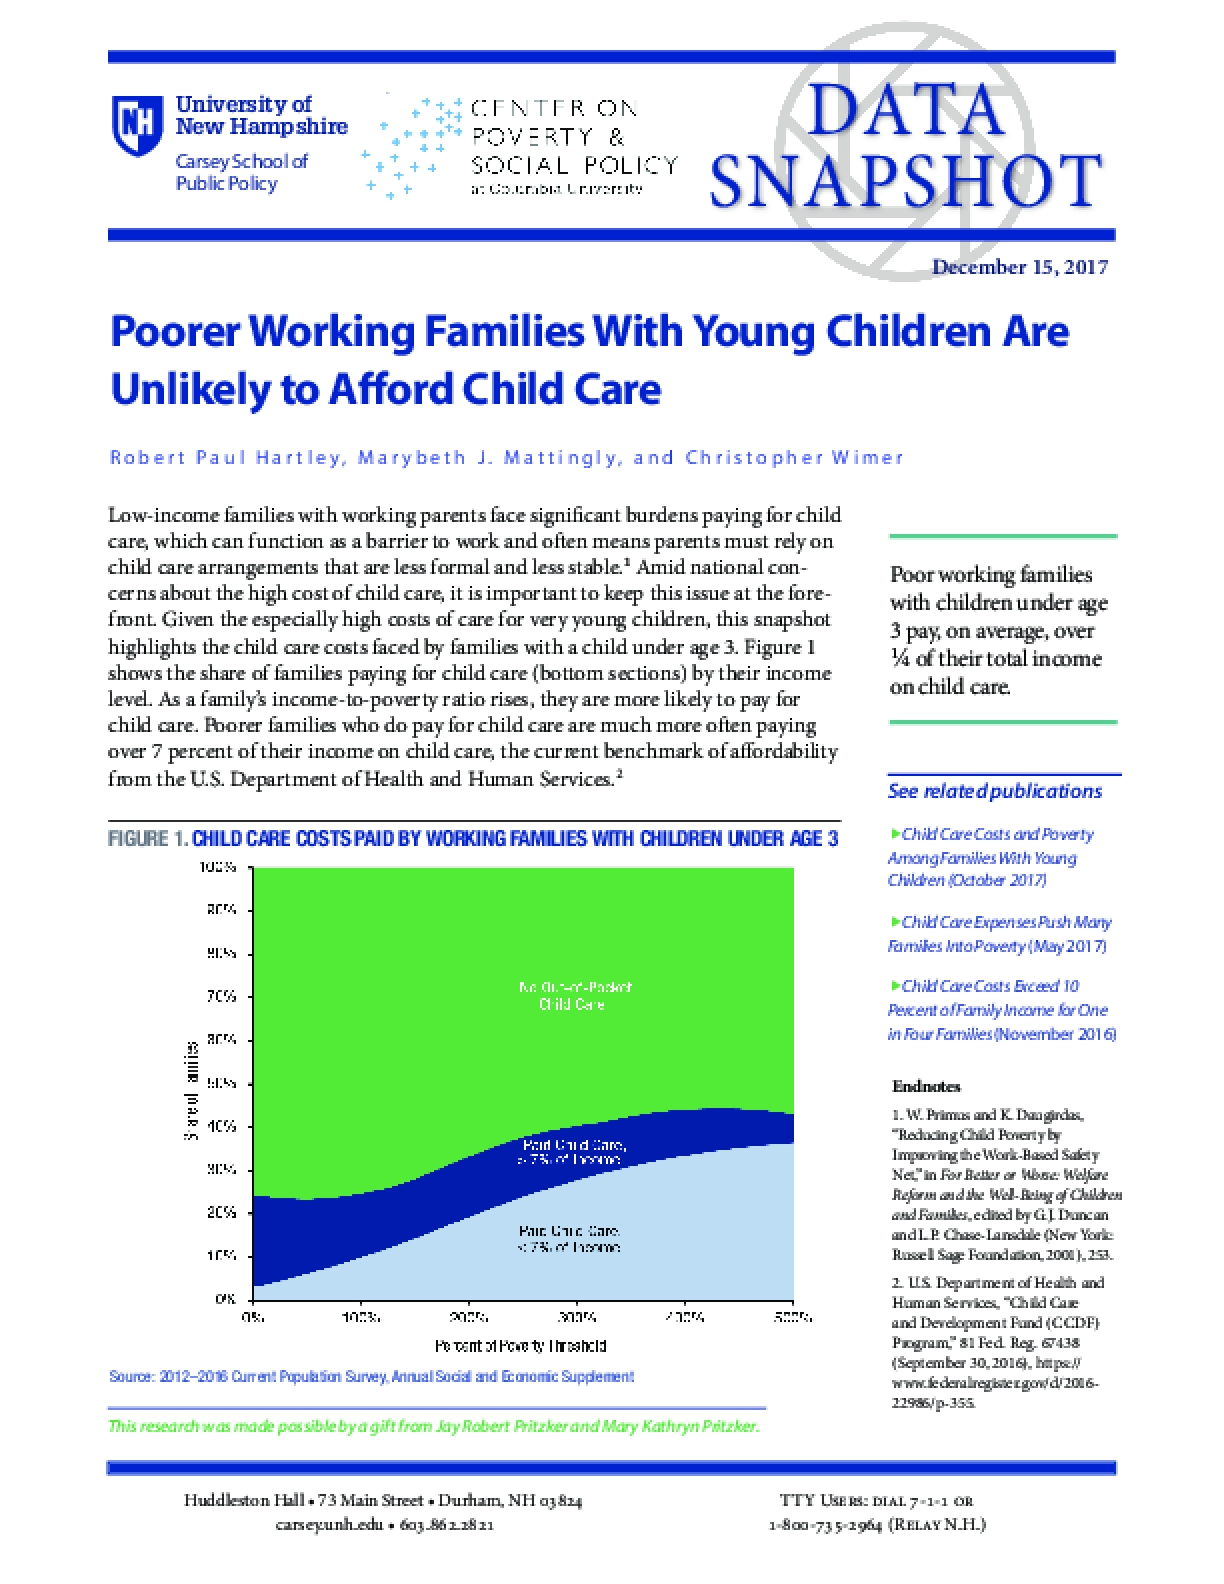 Data Snapshot: Poorer Working Families With Young Children Are Unlikely to Afford Child Care